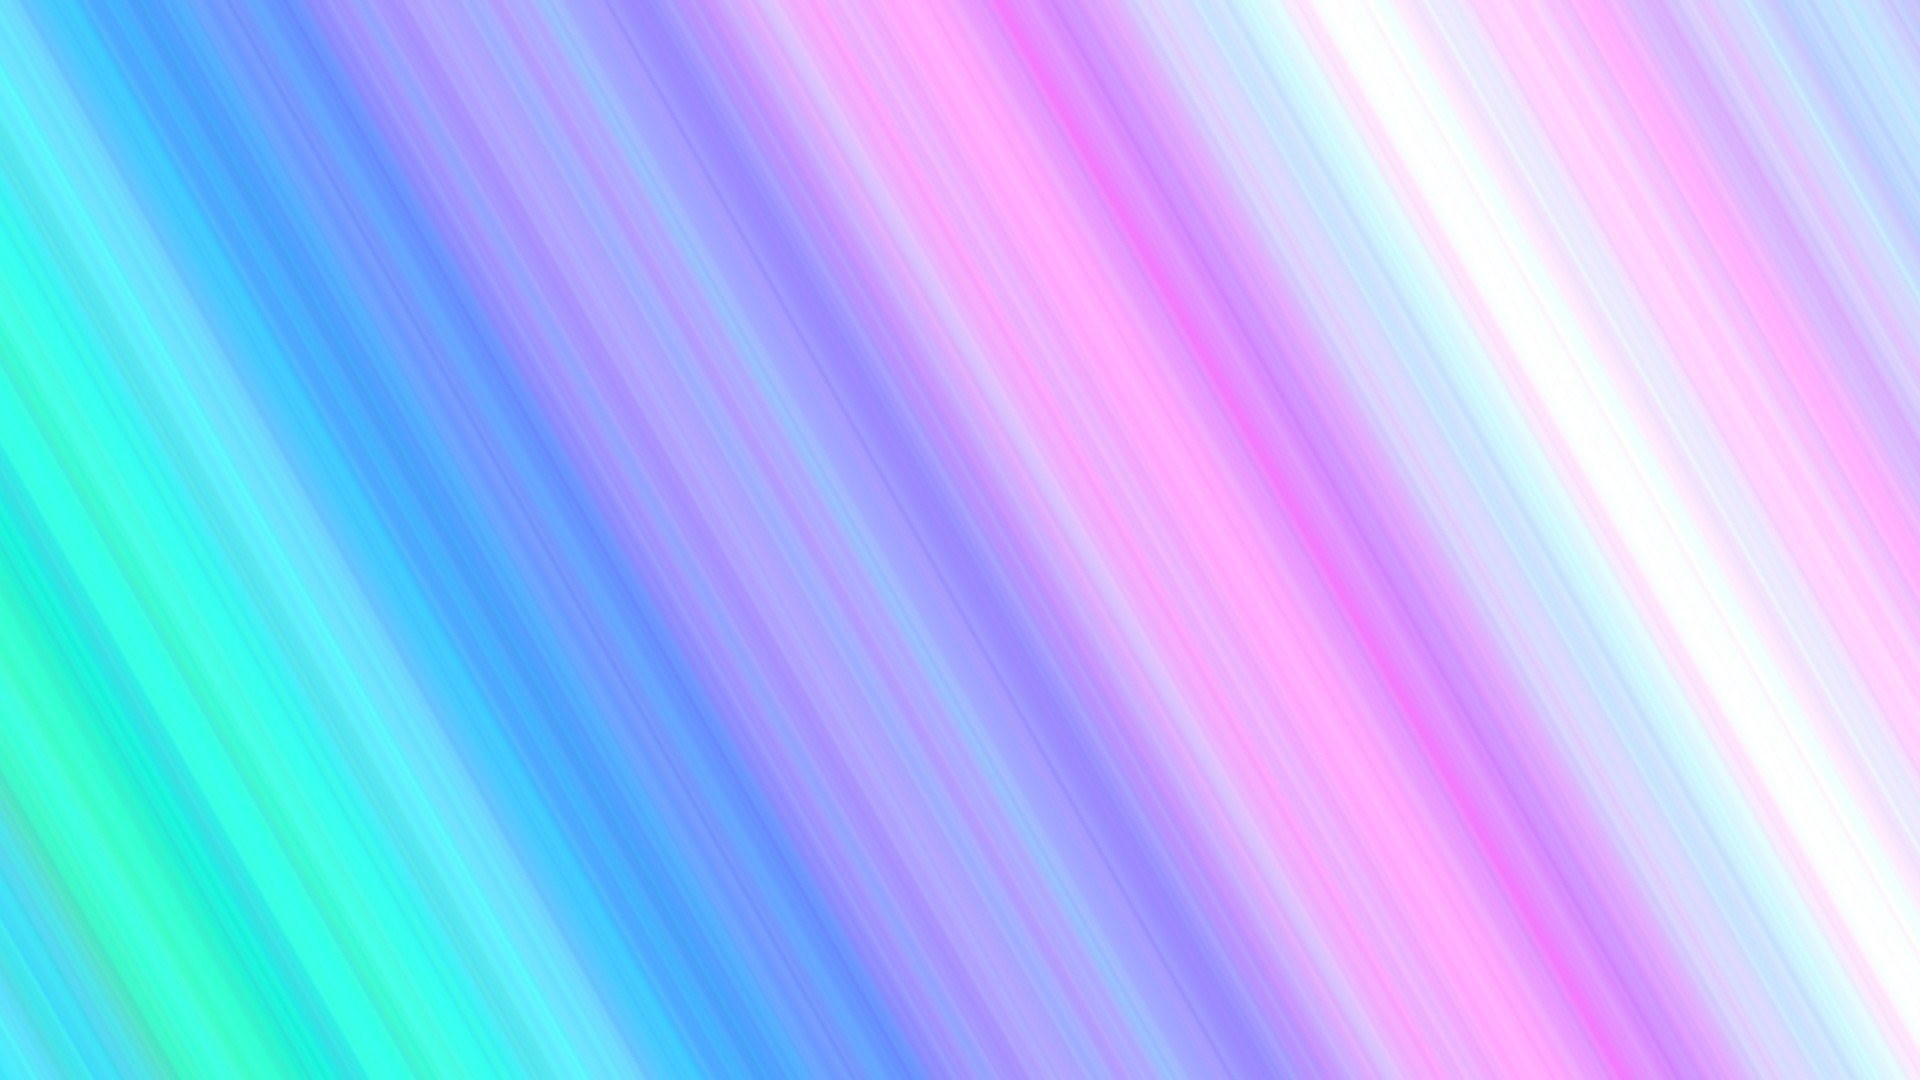 Pink Purple And Blue Wallpaper – HD Wallpapers Pretty